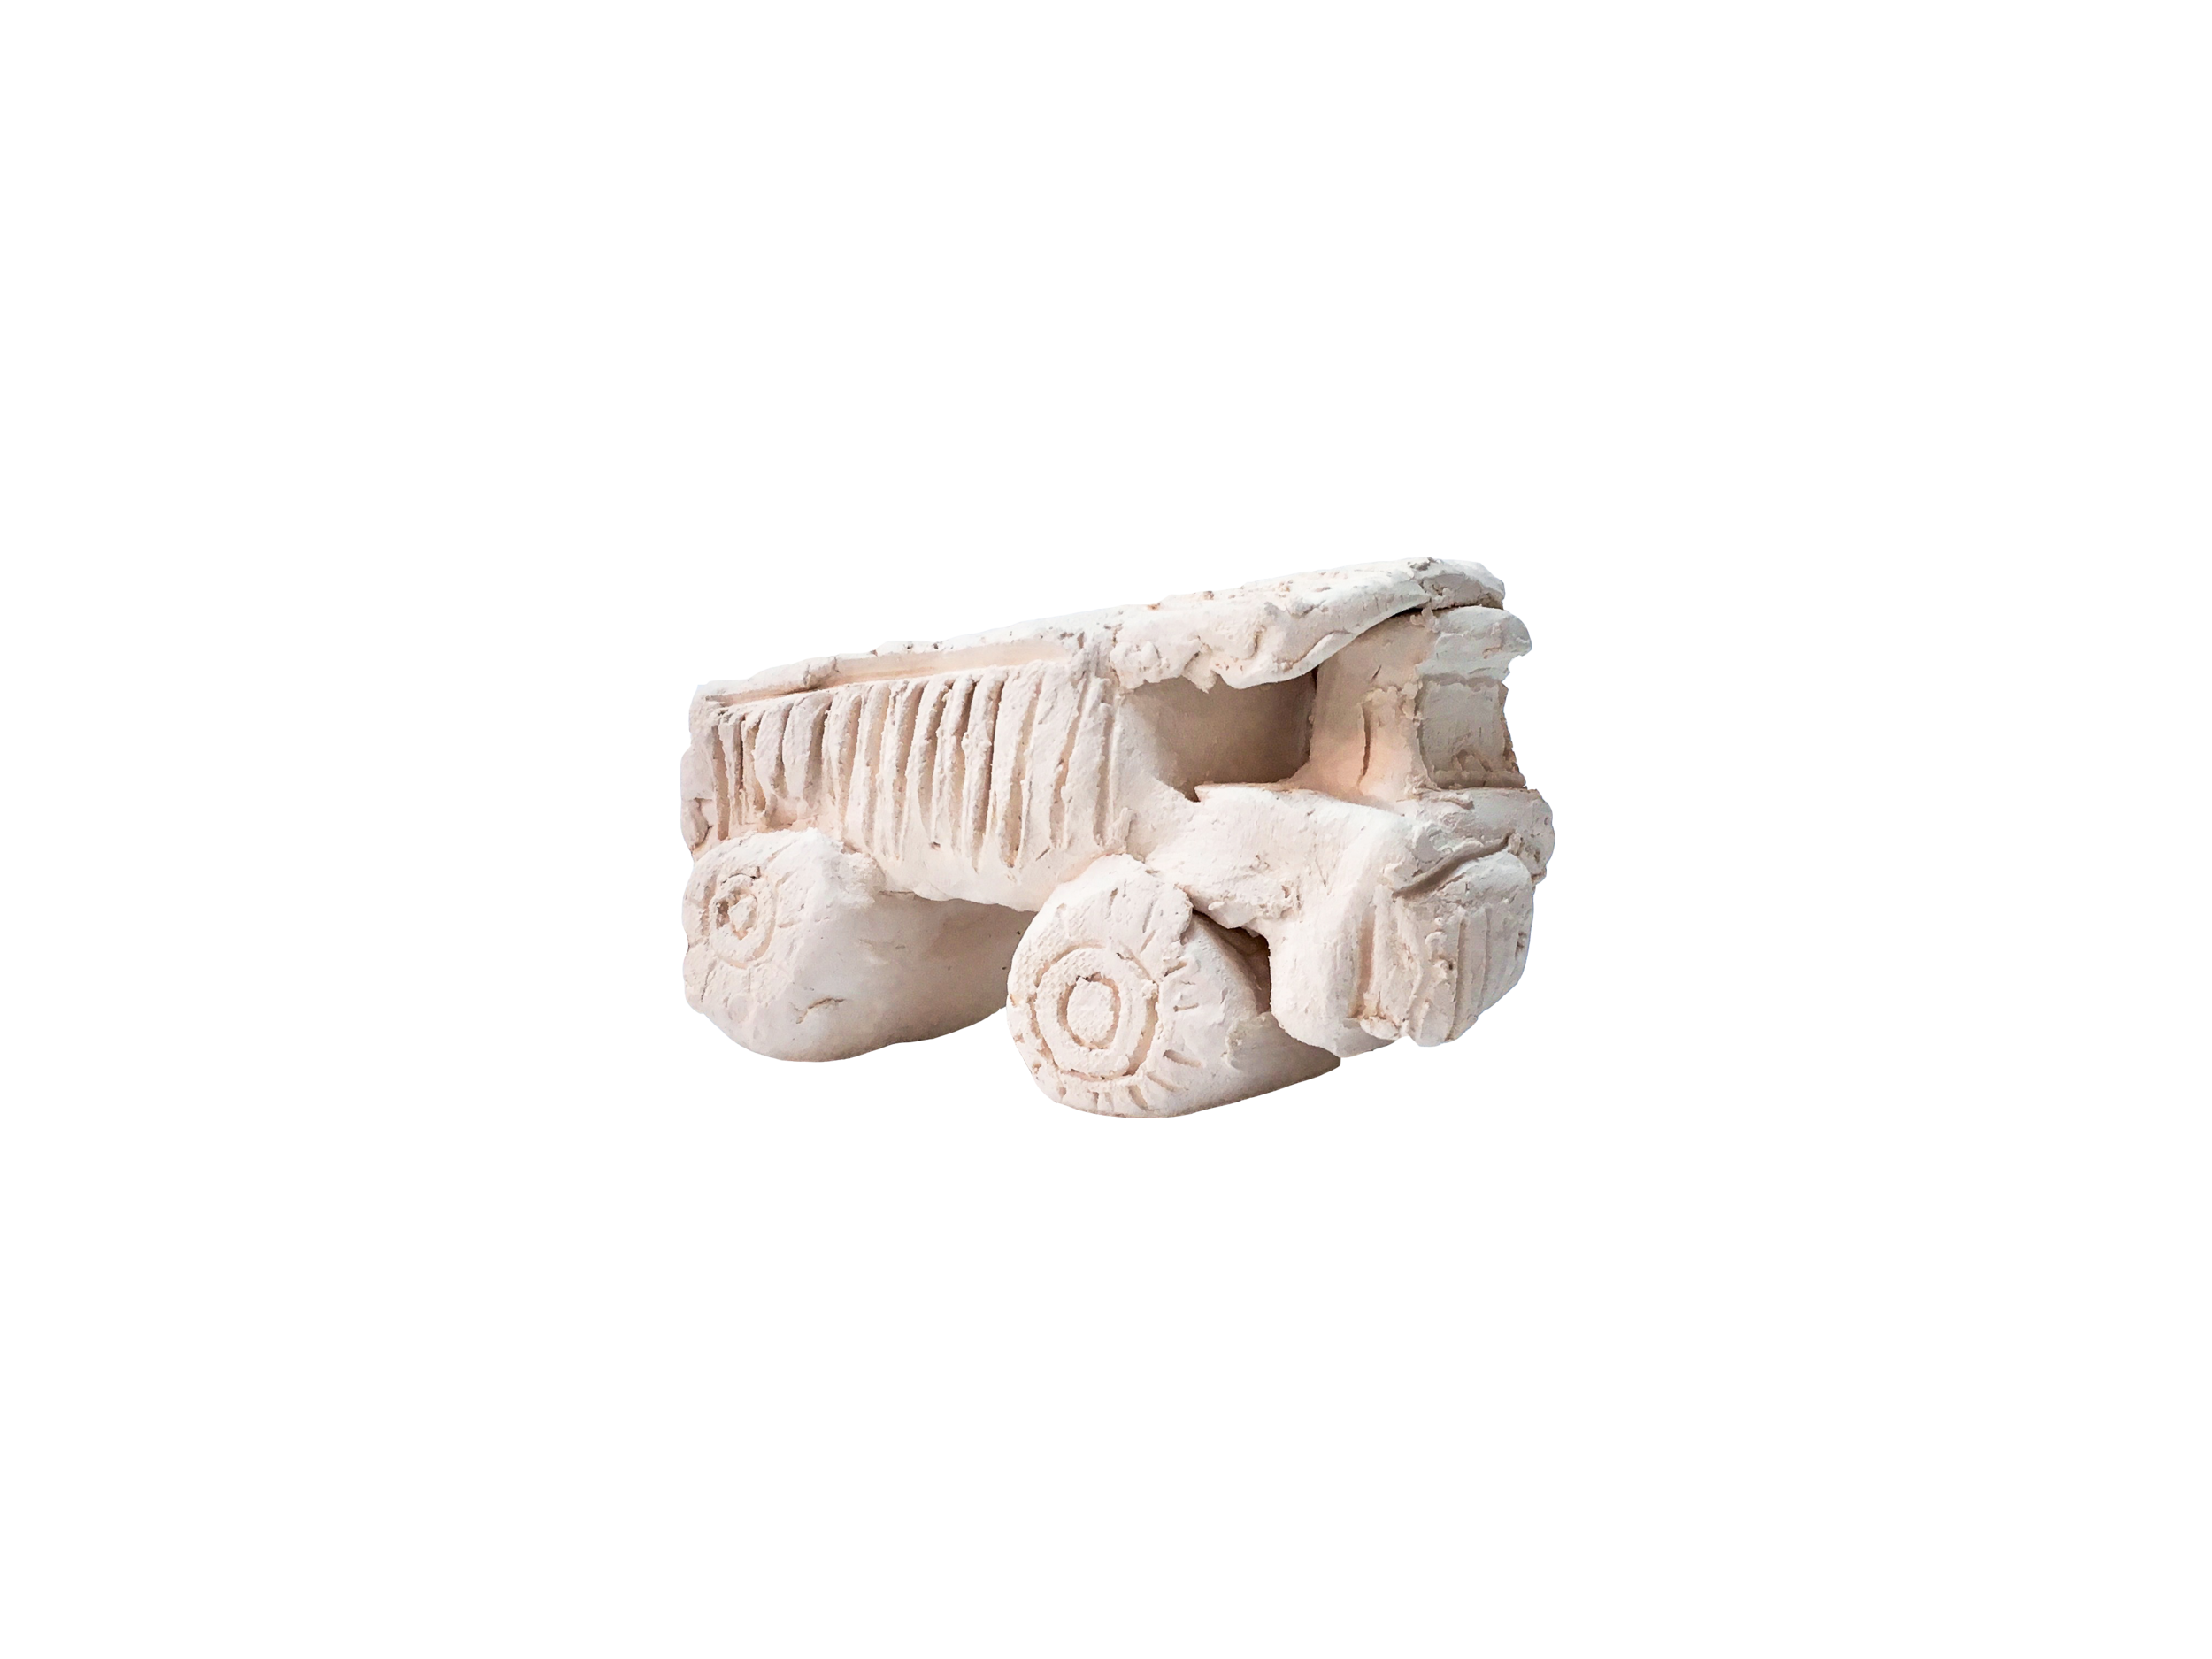 toy truck_BAMPFA_9.22.18.png